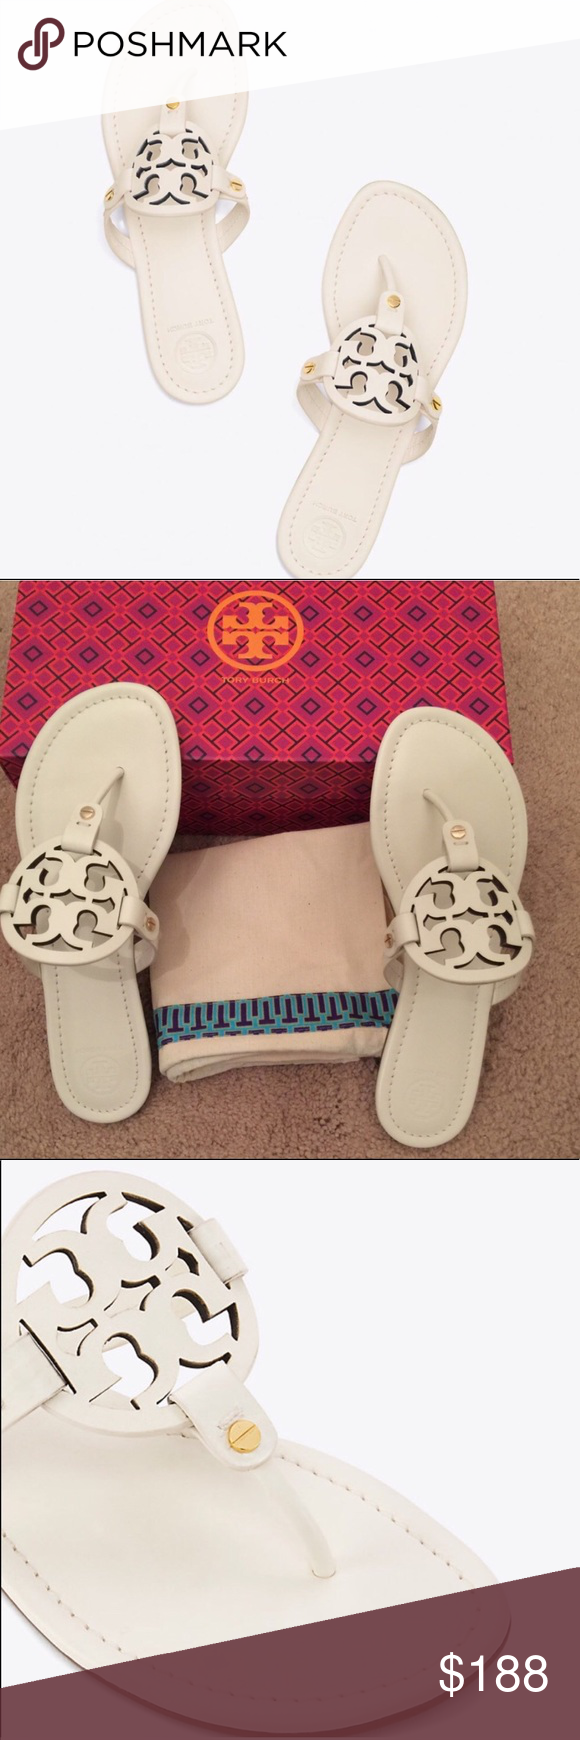 a21d7e2dbcc0 Tory Burch Miller Sandals Bleach 💯% authentic Tory Burch Miller sandals  NWT laser cut iconic double T logo strap cushioned footbed rubber sole  color is ...